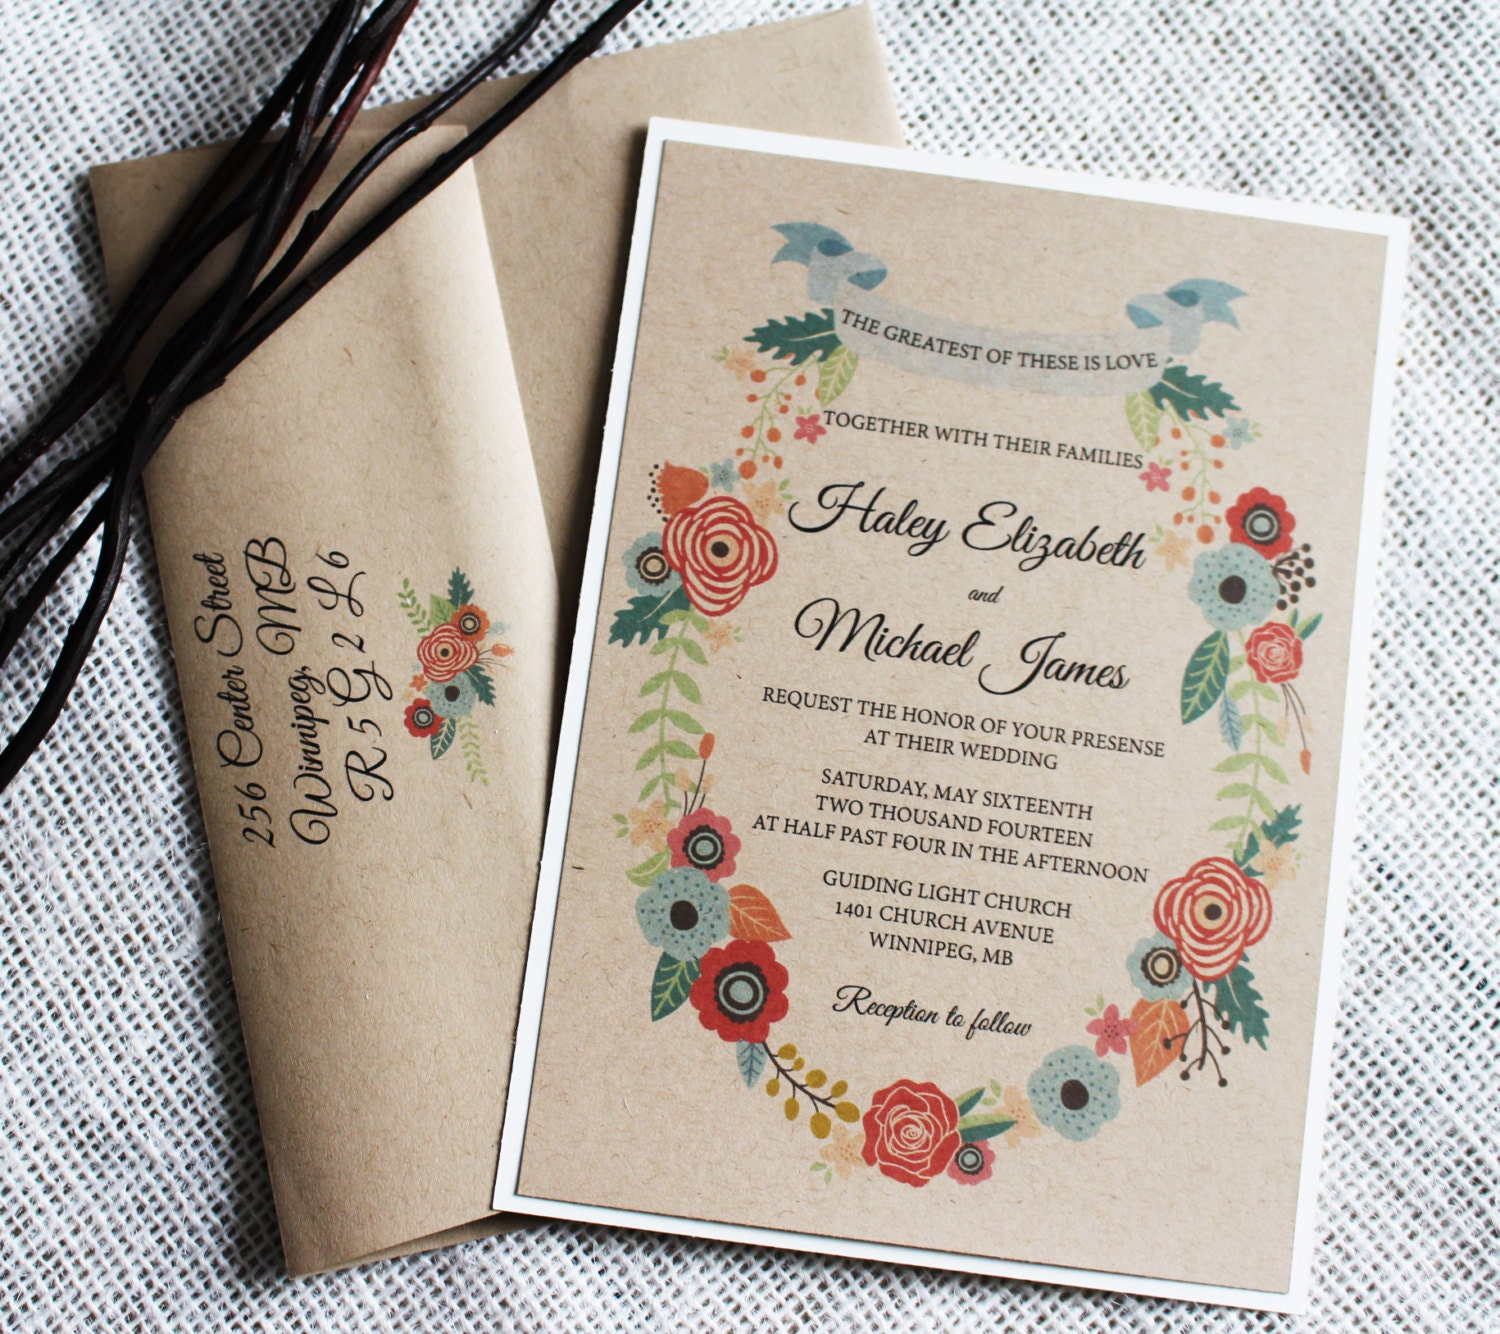 Romantic Wedding Invitation Wording: Rustic Wedding Invitation. Romantic Wedding Invitation